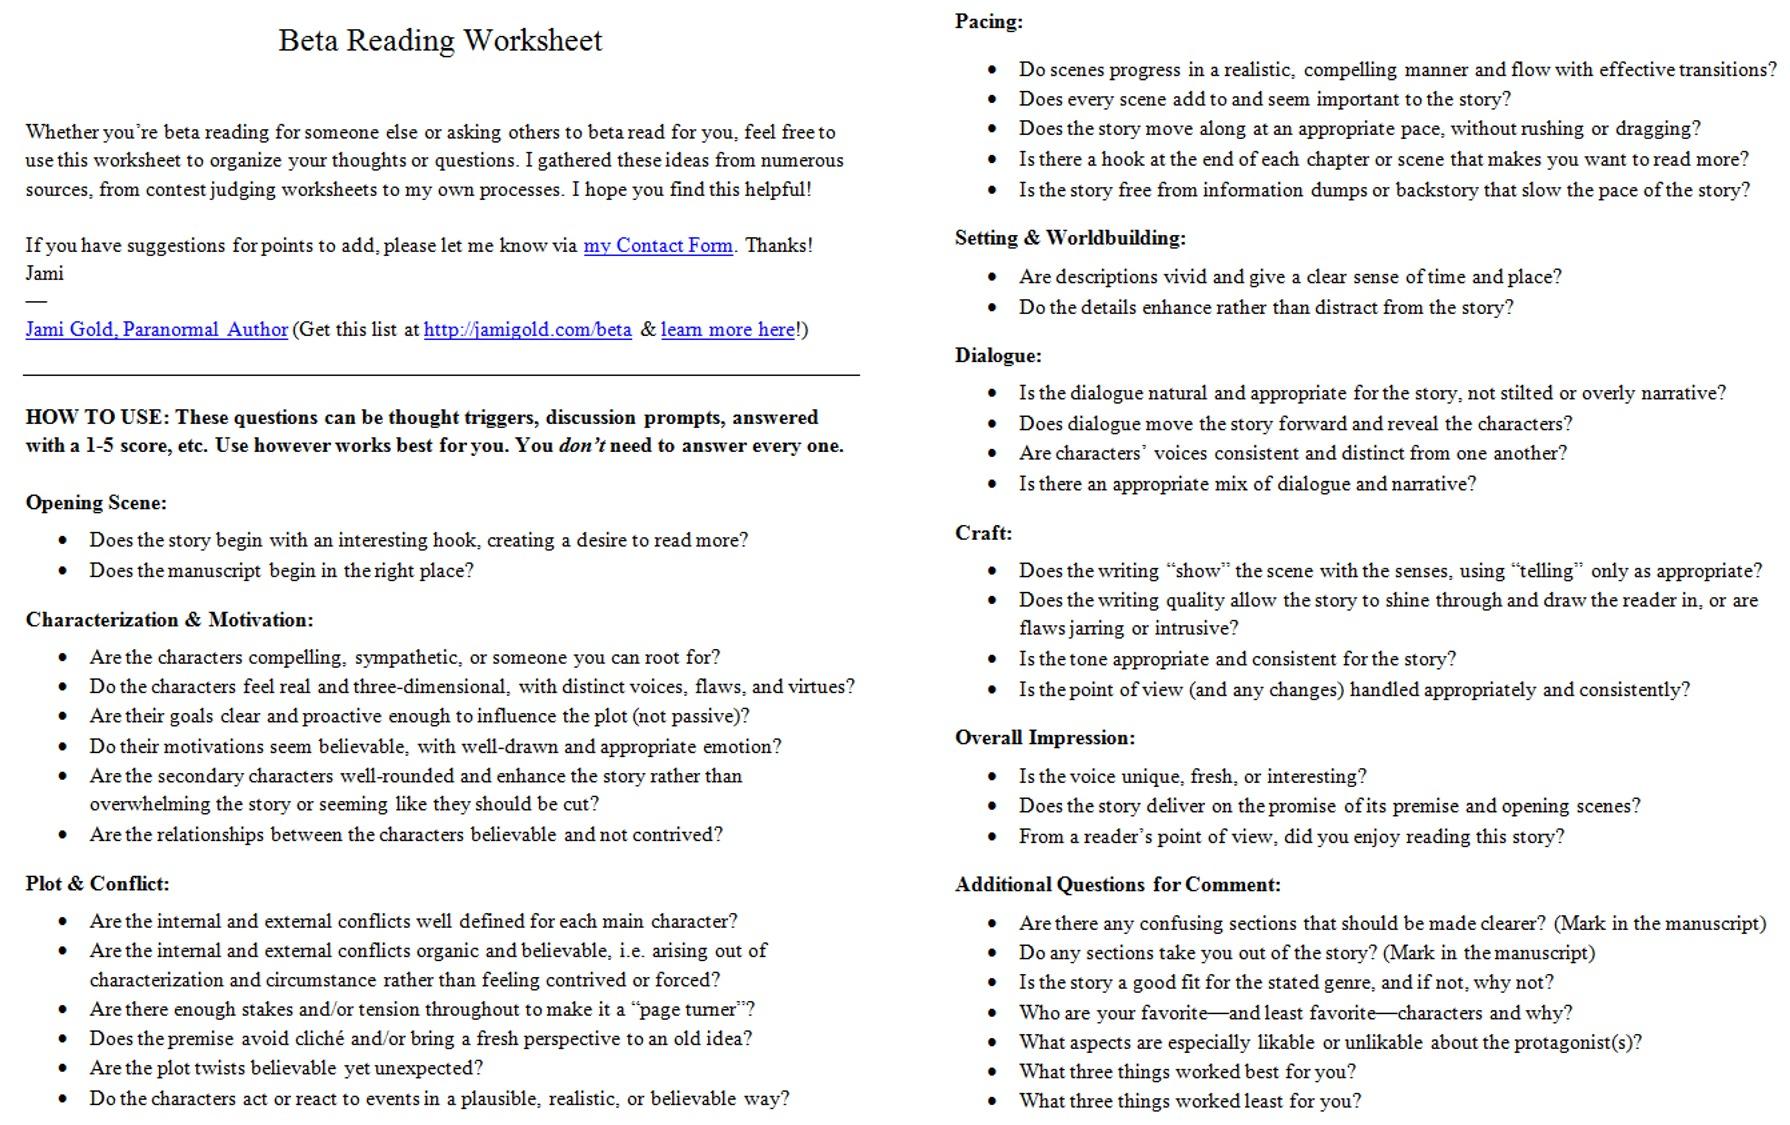 Weirdmailus  Sweet Worksheets For Writers  Jami Gold Paranormal Author With Marvelous Screen Shot Of The Twopage Beta Reading Worksheet With Charming Times Table Puzzle Worksheets Also Solving Systems Of Inequalities Word Problems Worksheet In Addition Rhyme Worksheets And Th Grade Math Common Core Worksheets As Well As Roald Dahl Worksheets Additionally Comparative And Superlative Adjectives Worksheet Pdf From Jamigoldcom With Weirdmailus  Marvelous Worksheets For Writers  Jami Gold Paranormal Author With Charming Screen Shot Of The Twopage Beta Reading Worksheet And Sweet Times Table Puzzle Worksheets Also Solving Systems Of Inequalities Word Problems Worksheet In Addition Rhyme Worksheets From Jamigoldcom